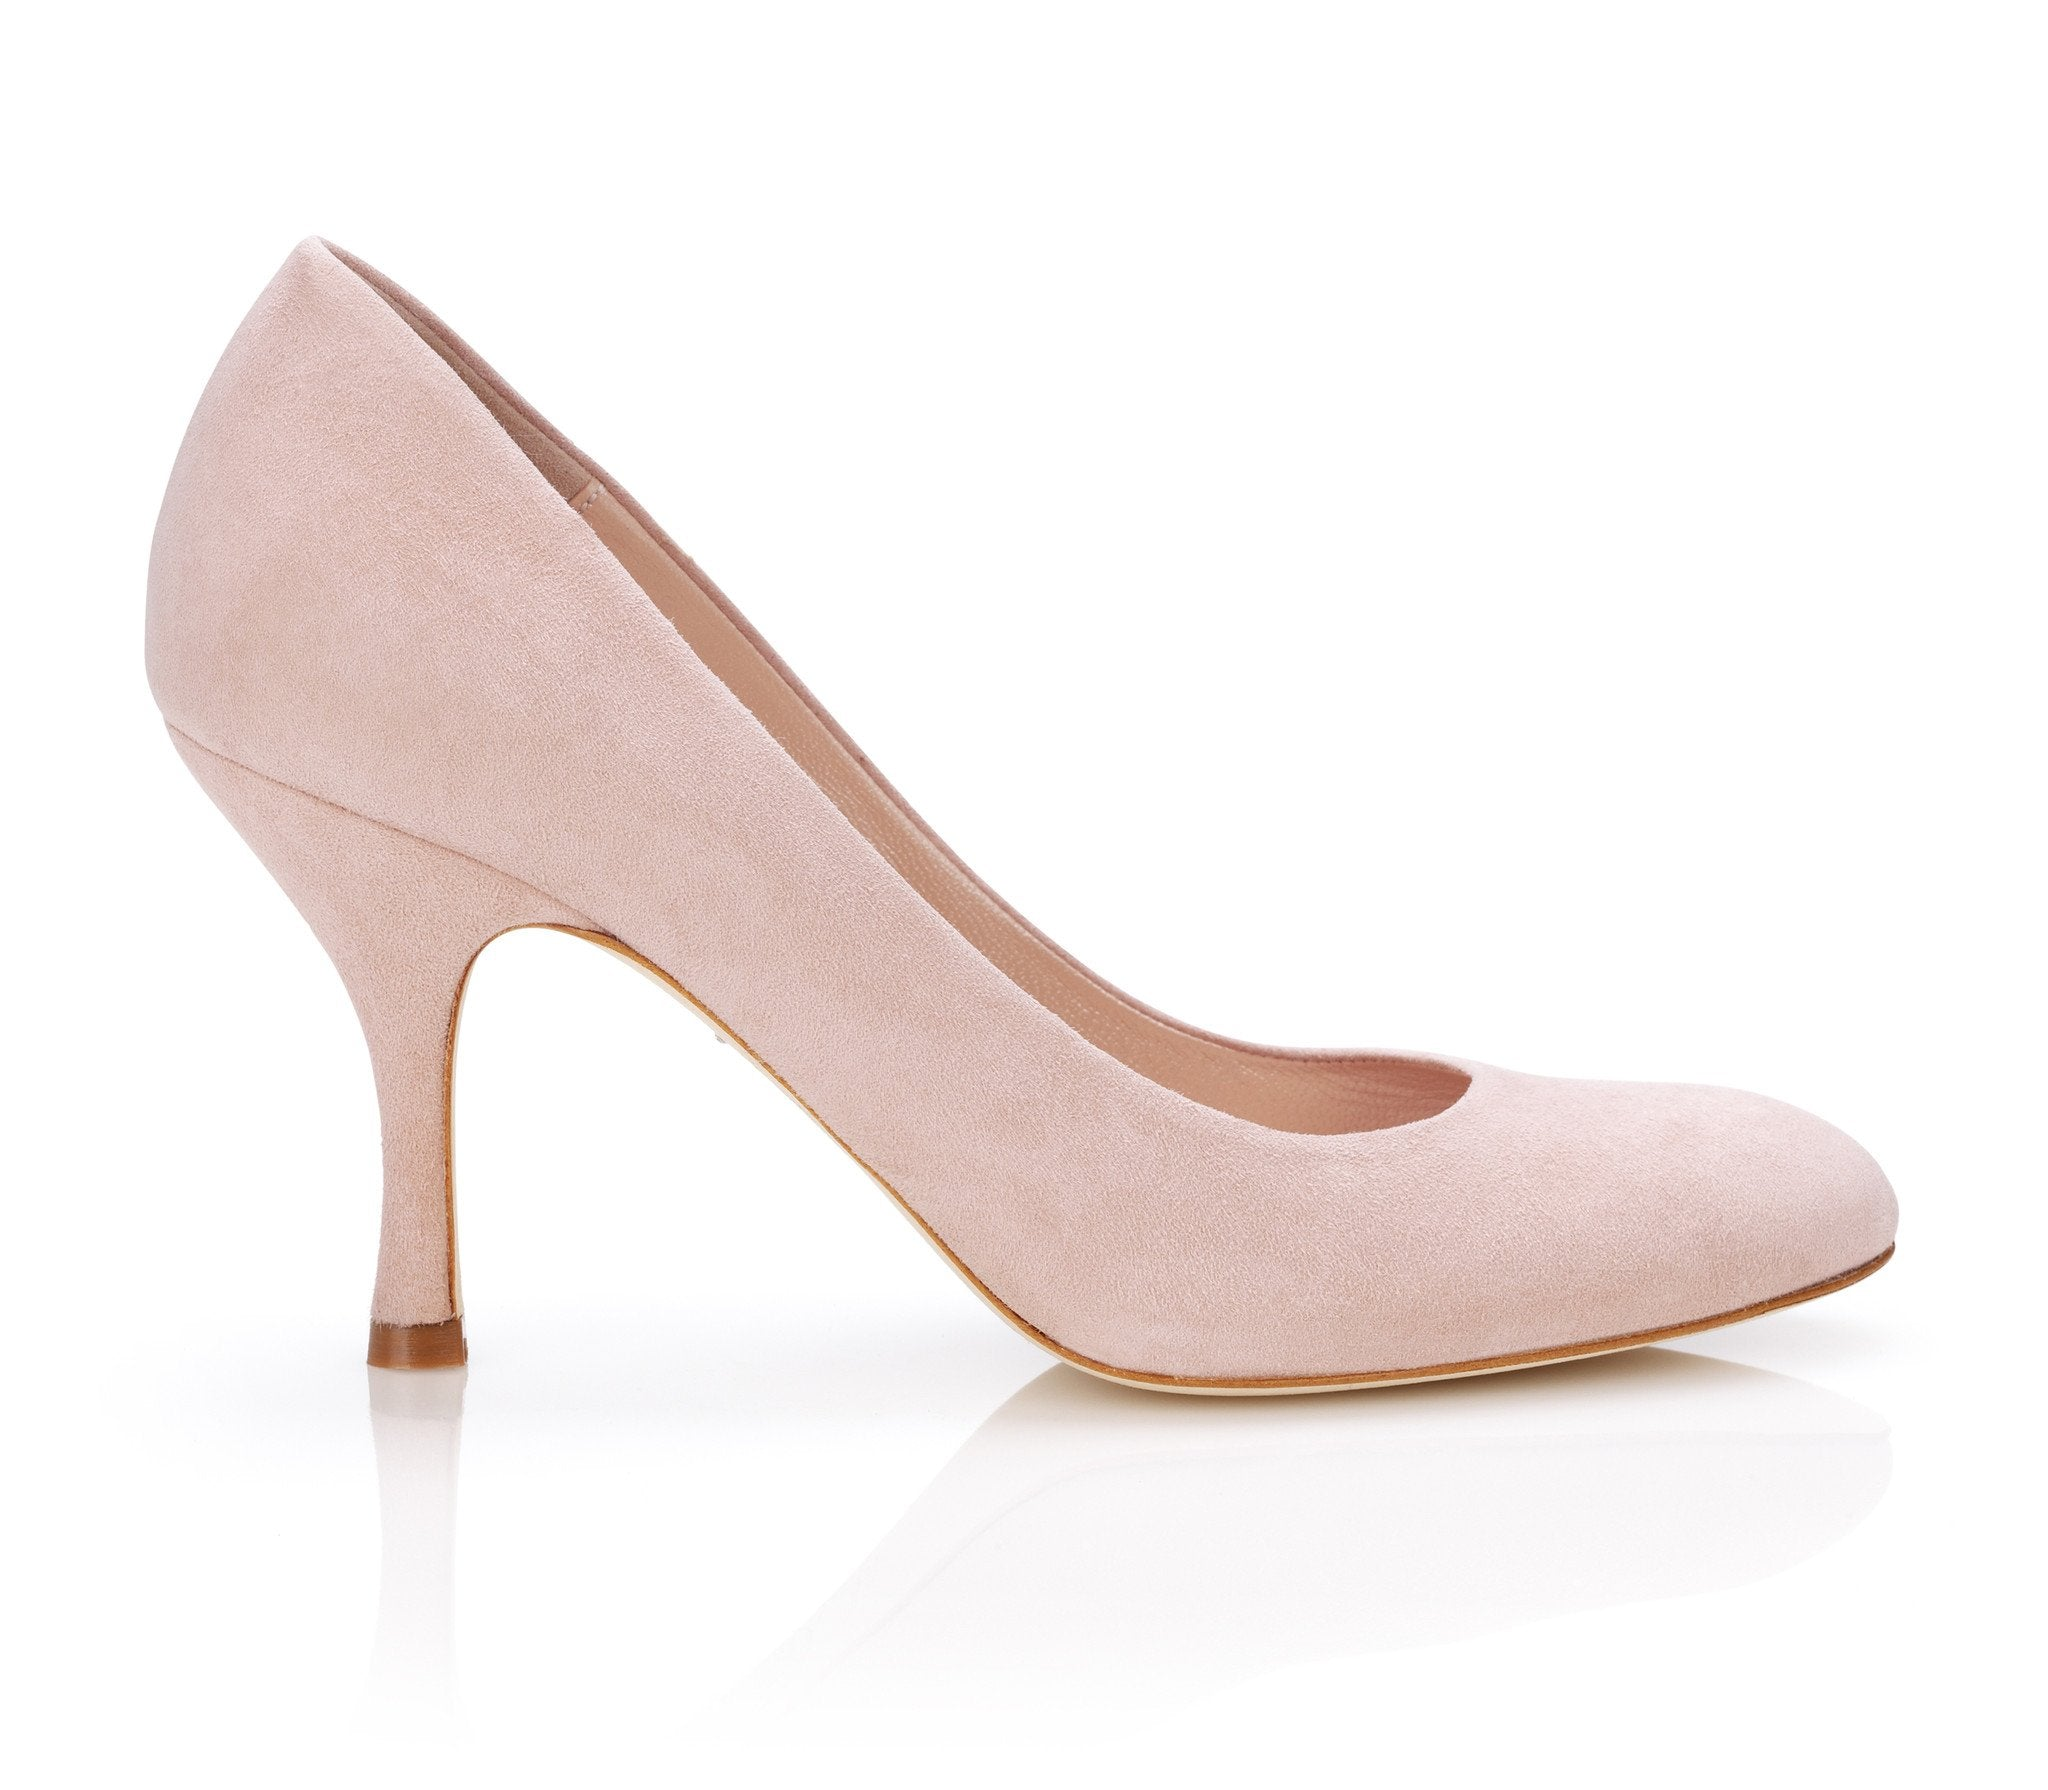 Poppy Misty Rose - Occasion Shoe - Misty Rose Kid Suede - Court Shoe